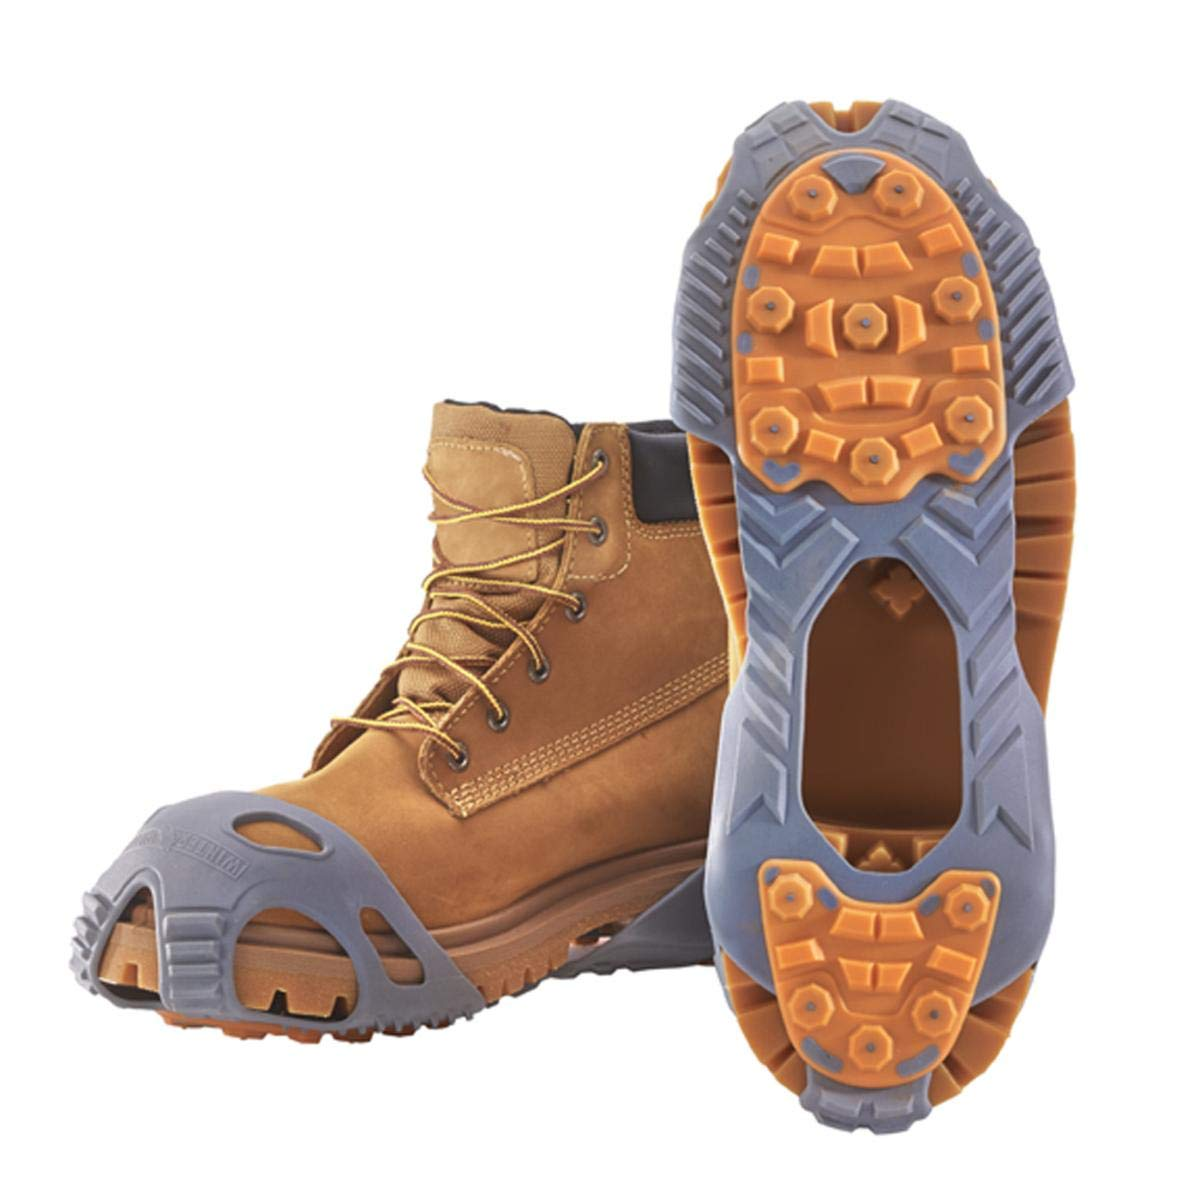 Winter Walking Low-Pro Ice Cleat (Medium)